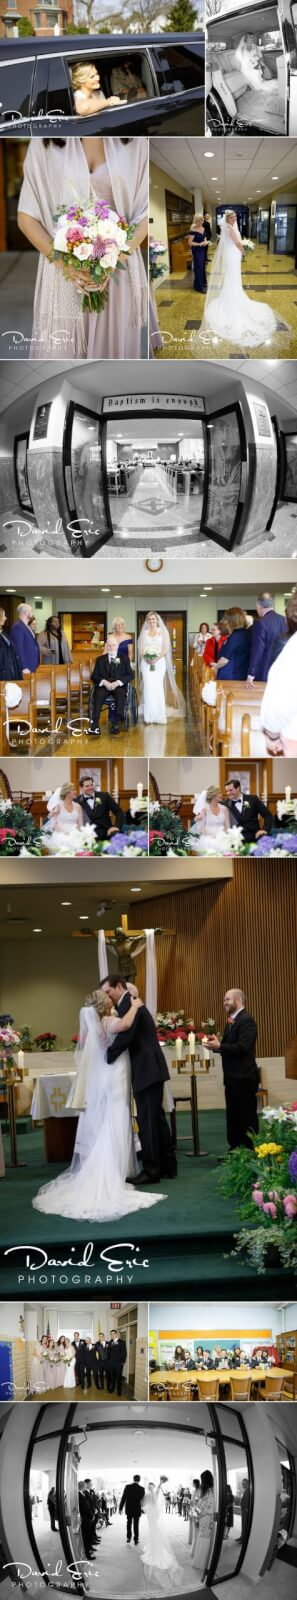 wedding at seasons Ceremony photos Wedding at